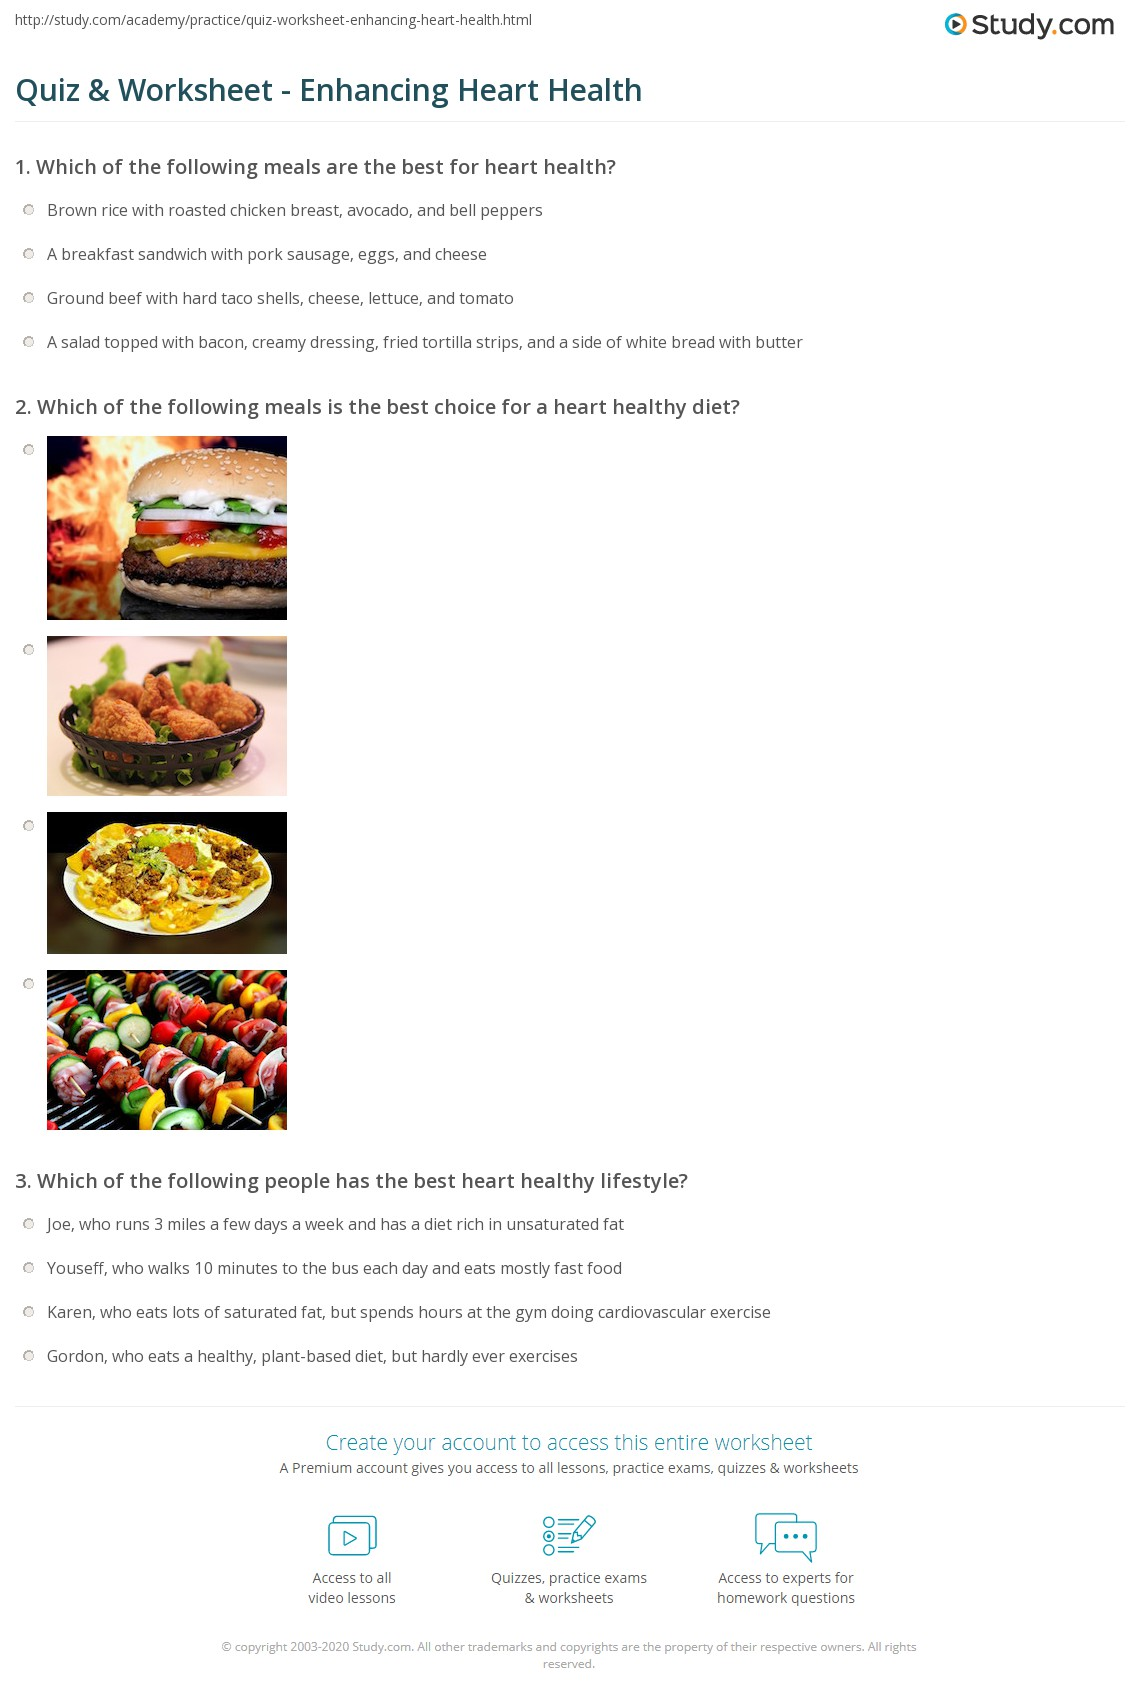 Quiz worksheet enhancing heart health study which of the following meals is the best choice for a heart healthy diet forumfinder Images